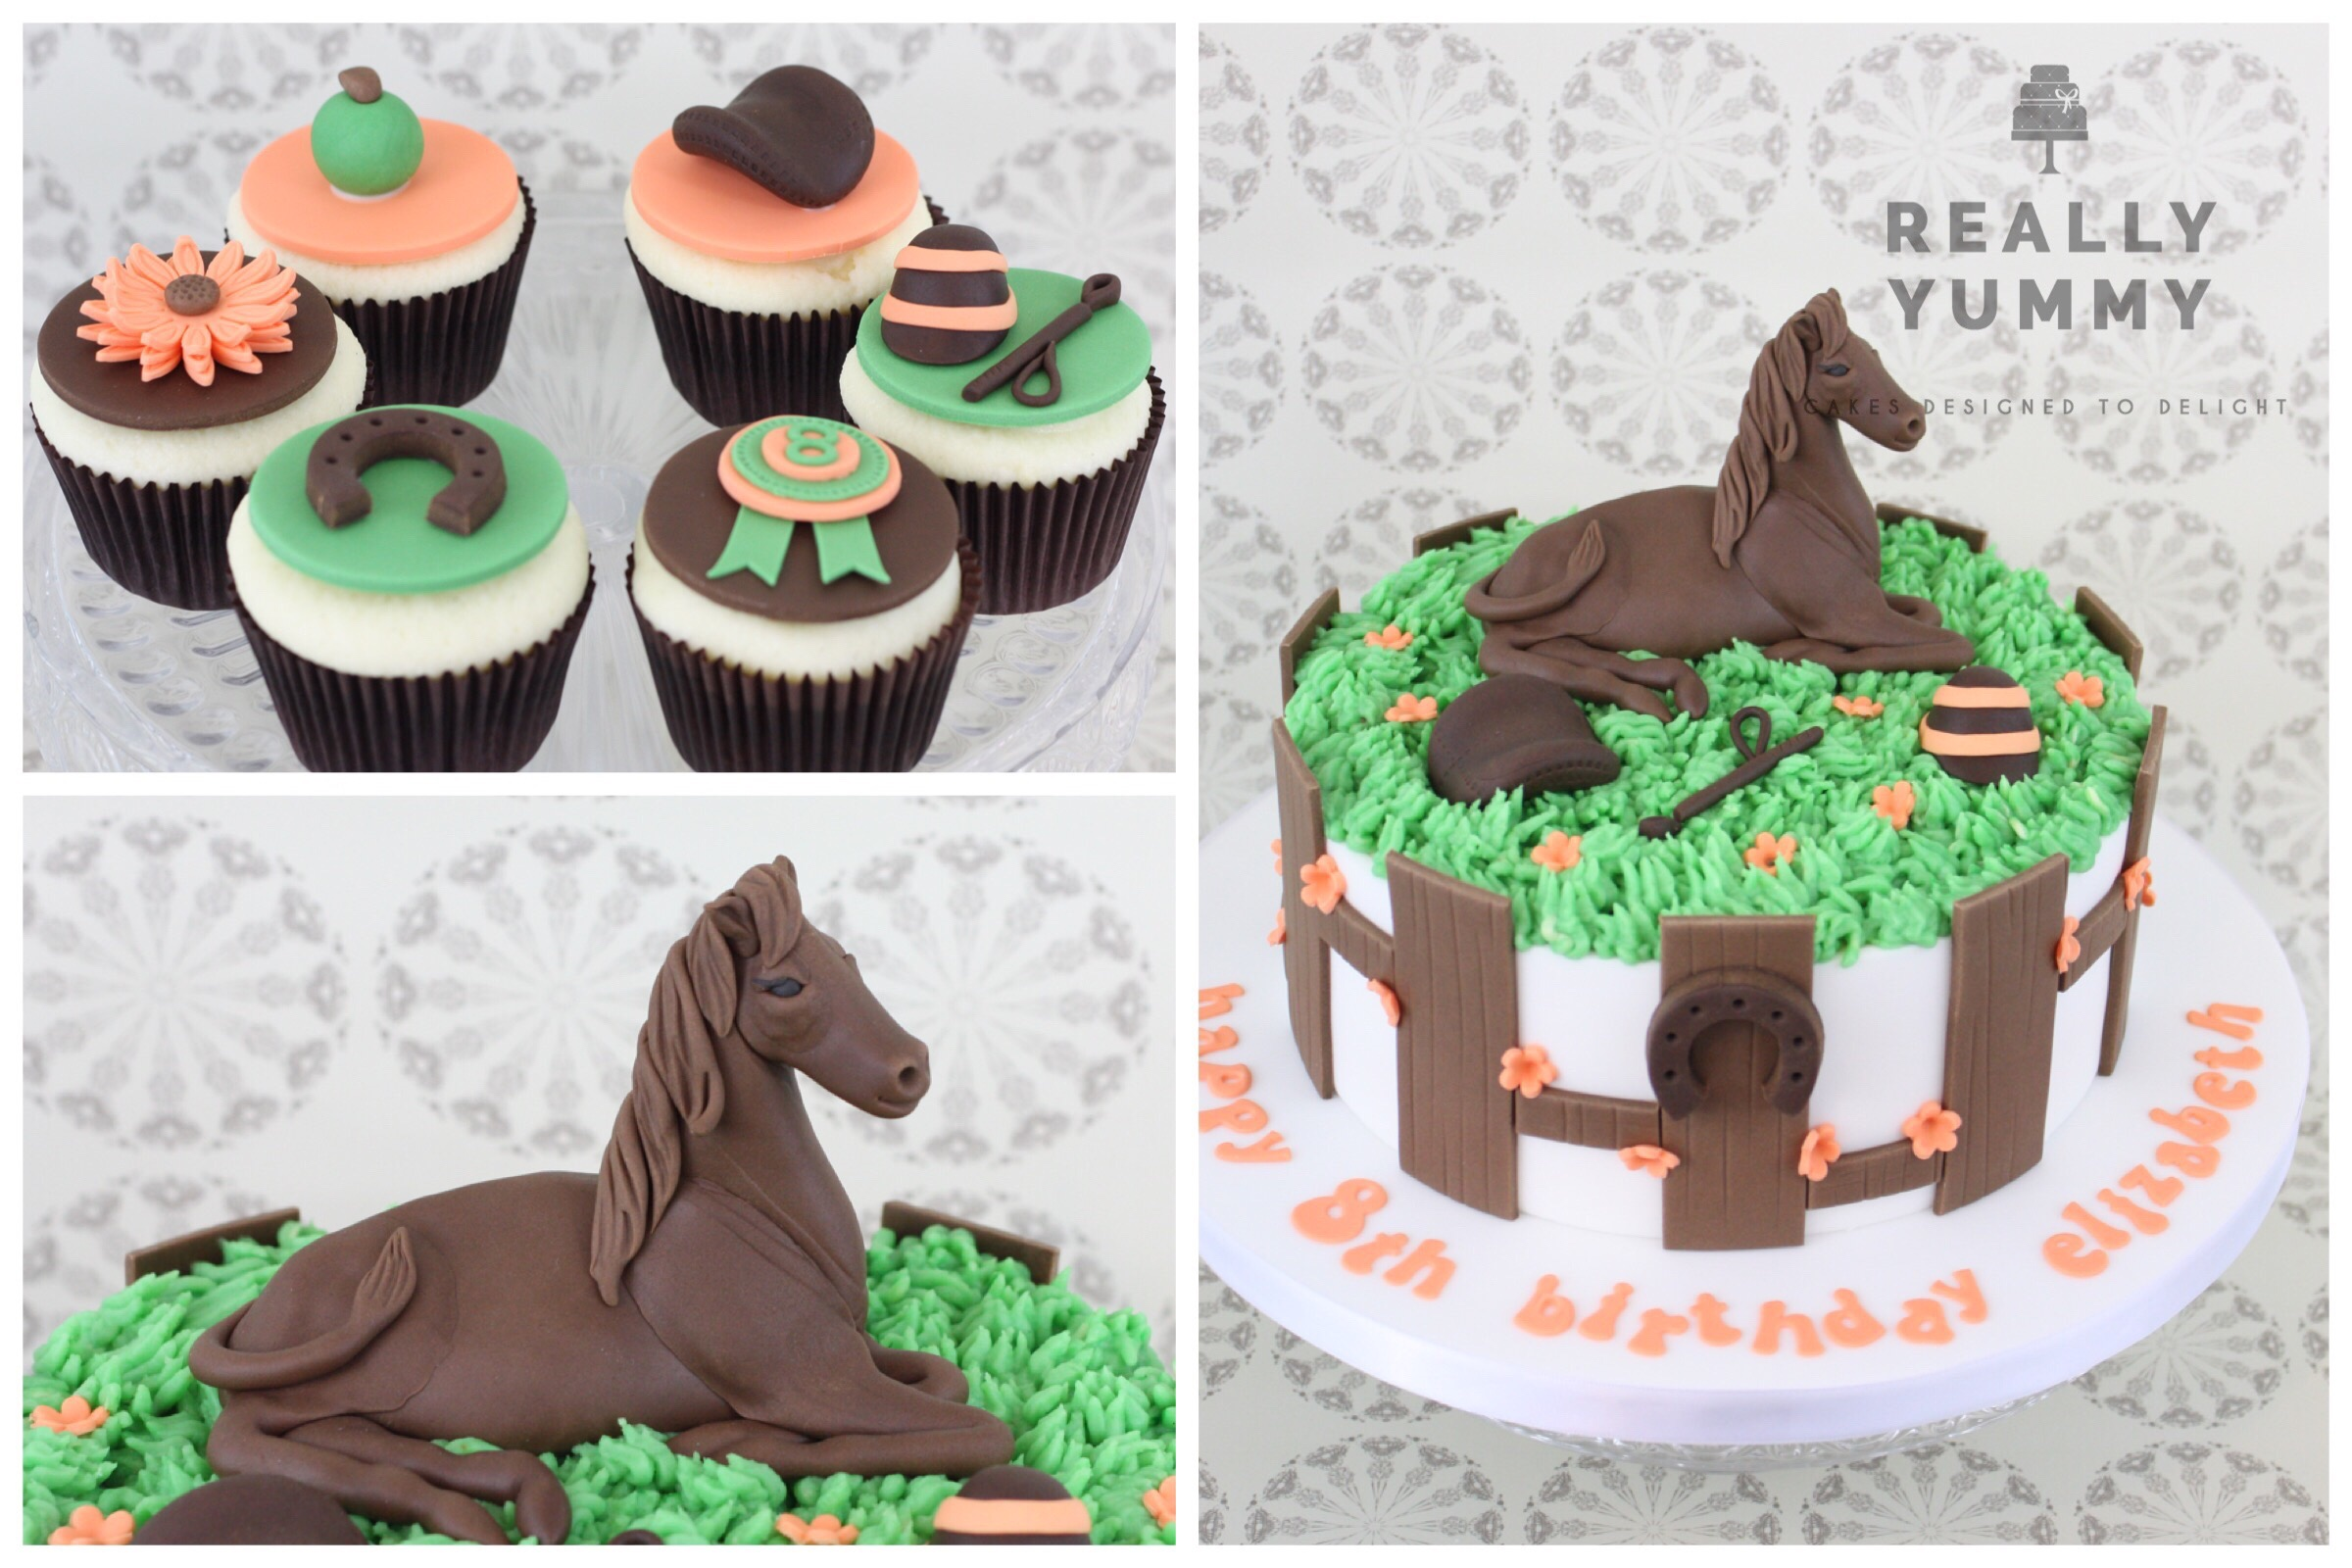 Horse cake and cupcakes